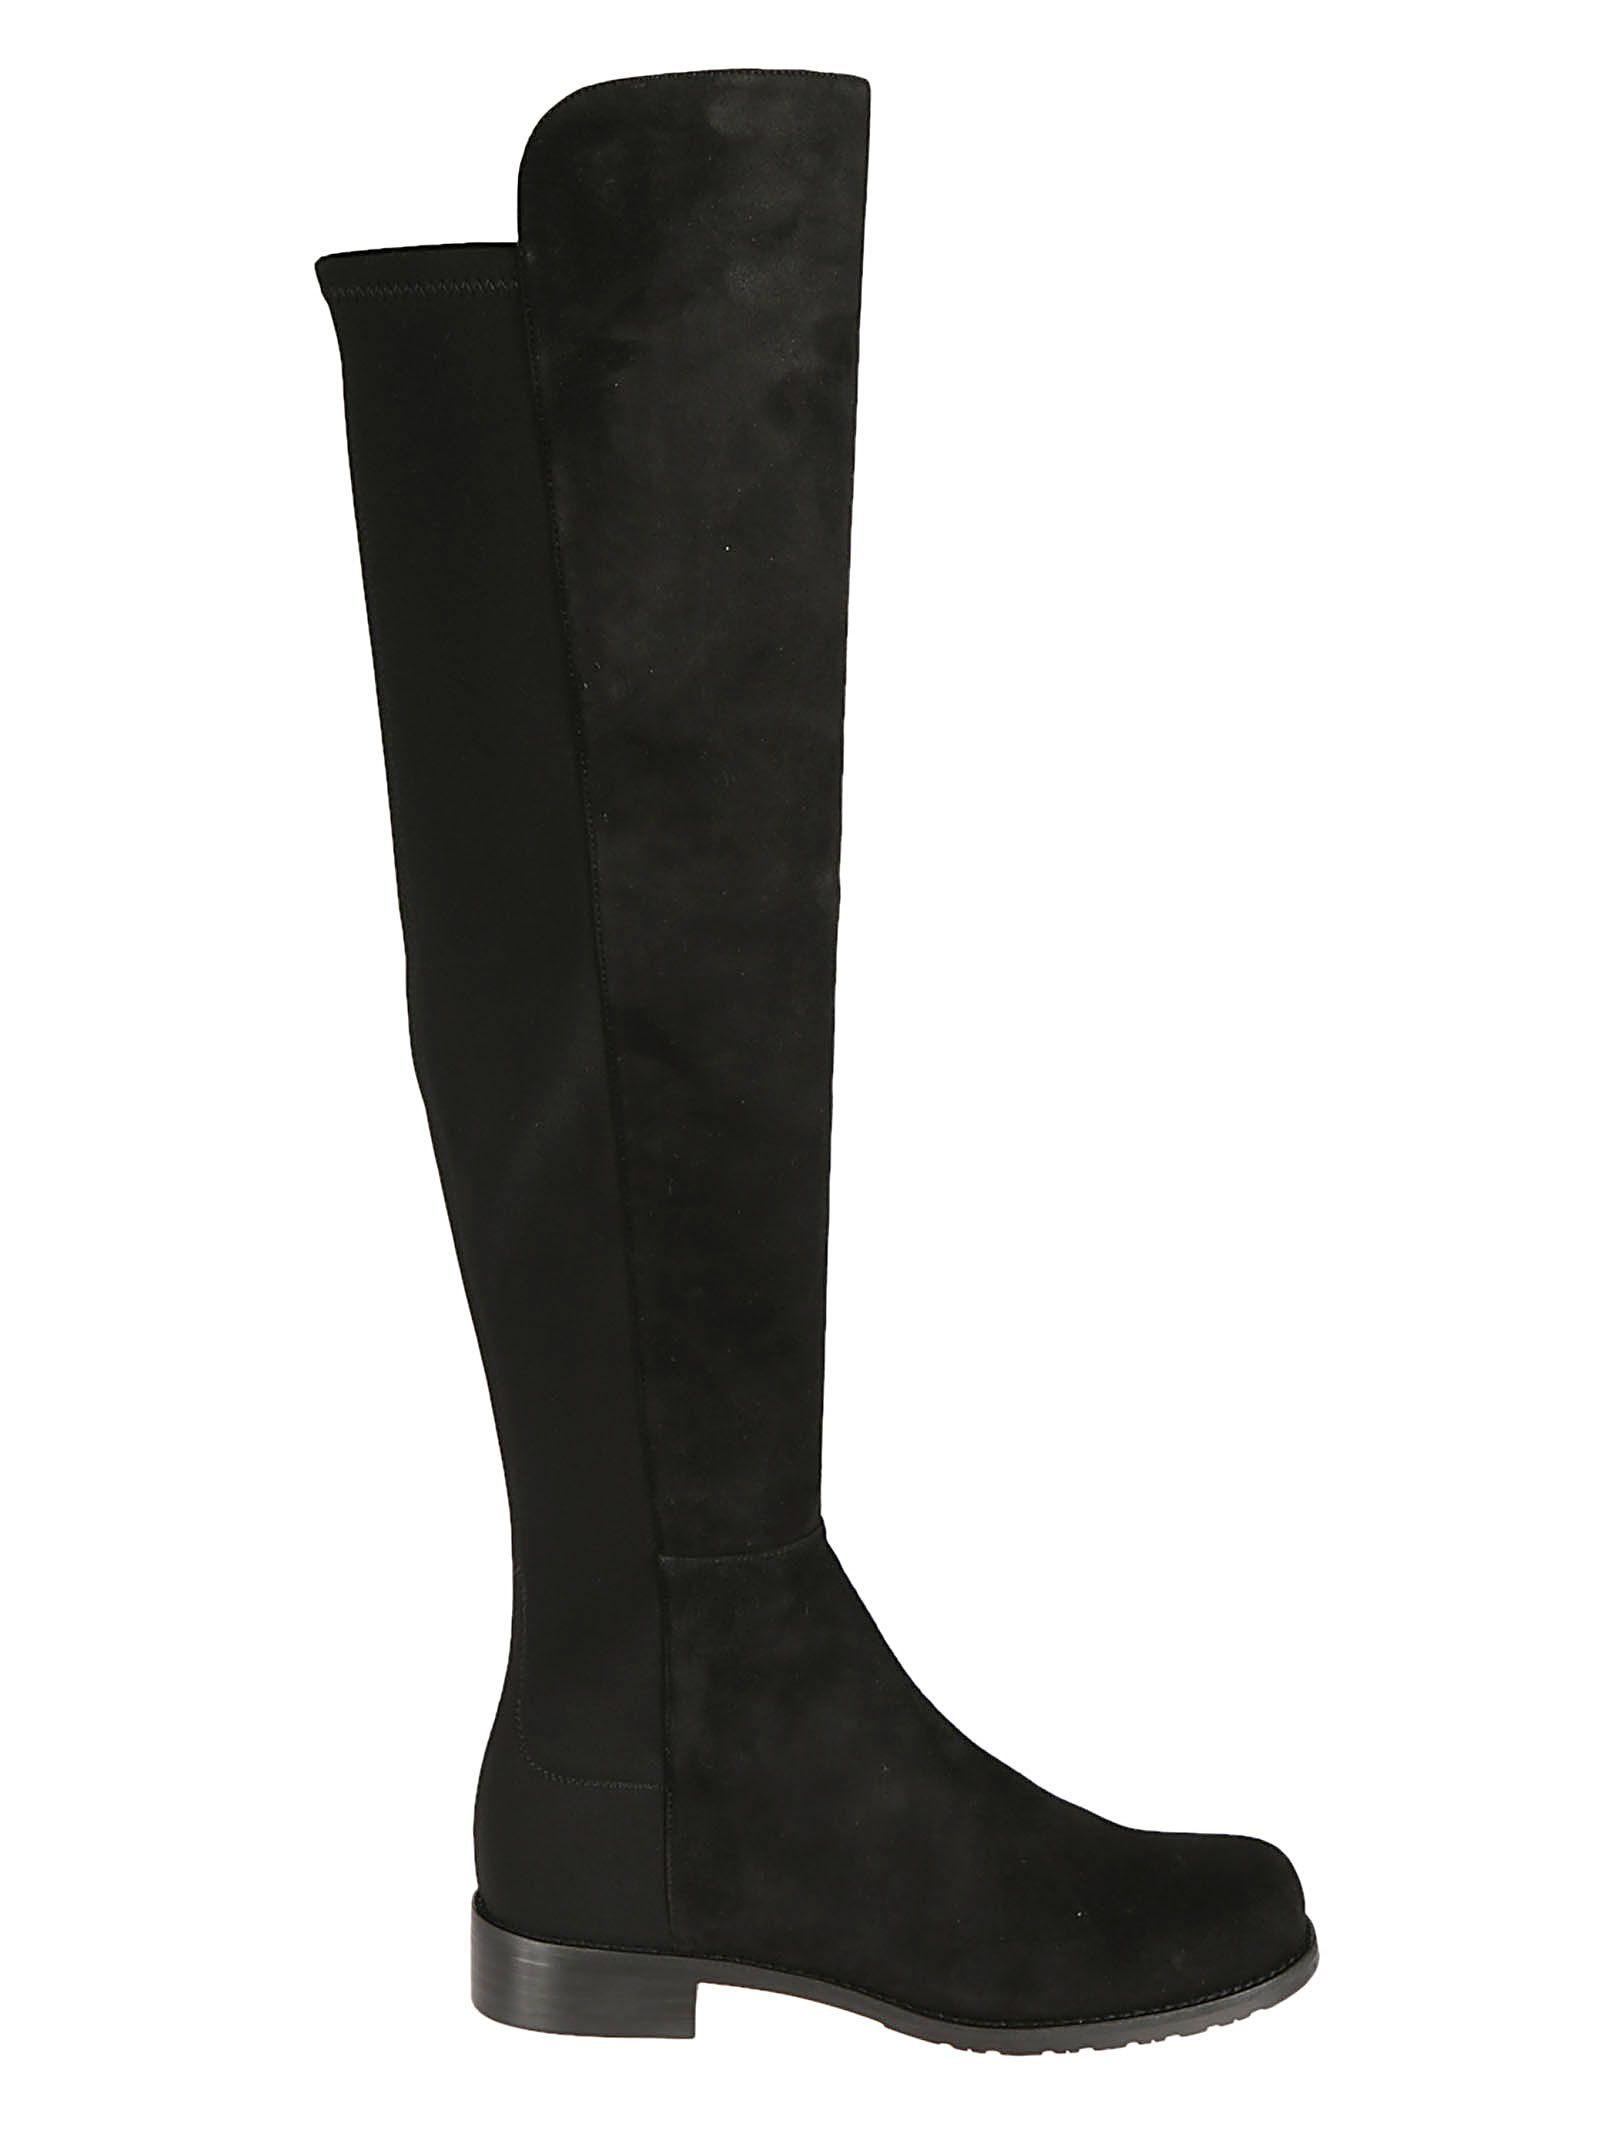 5050 Over-The-Knee Boots, Black